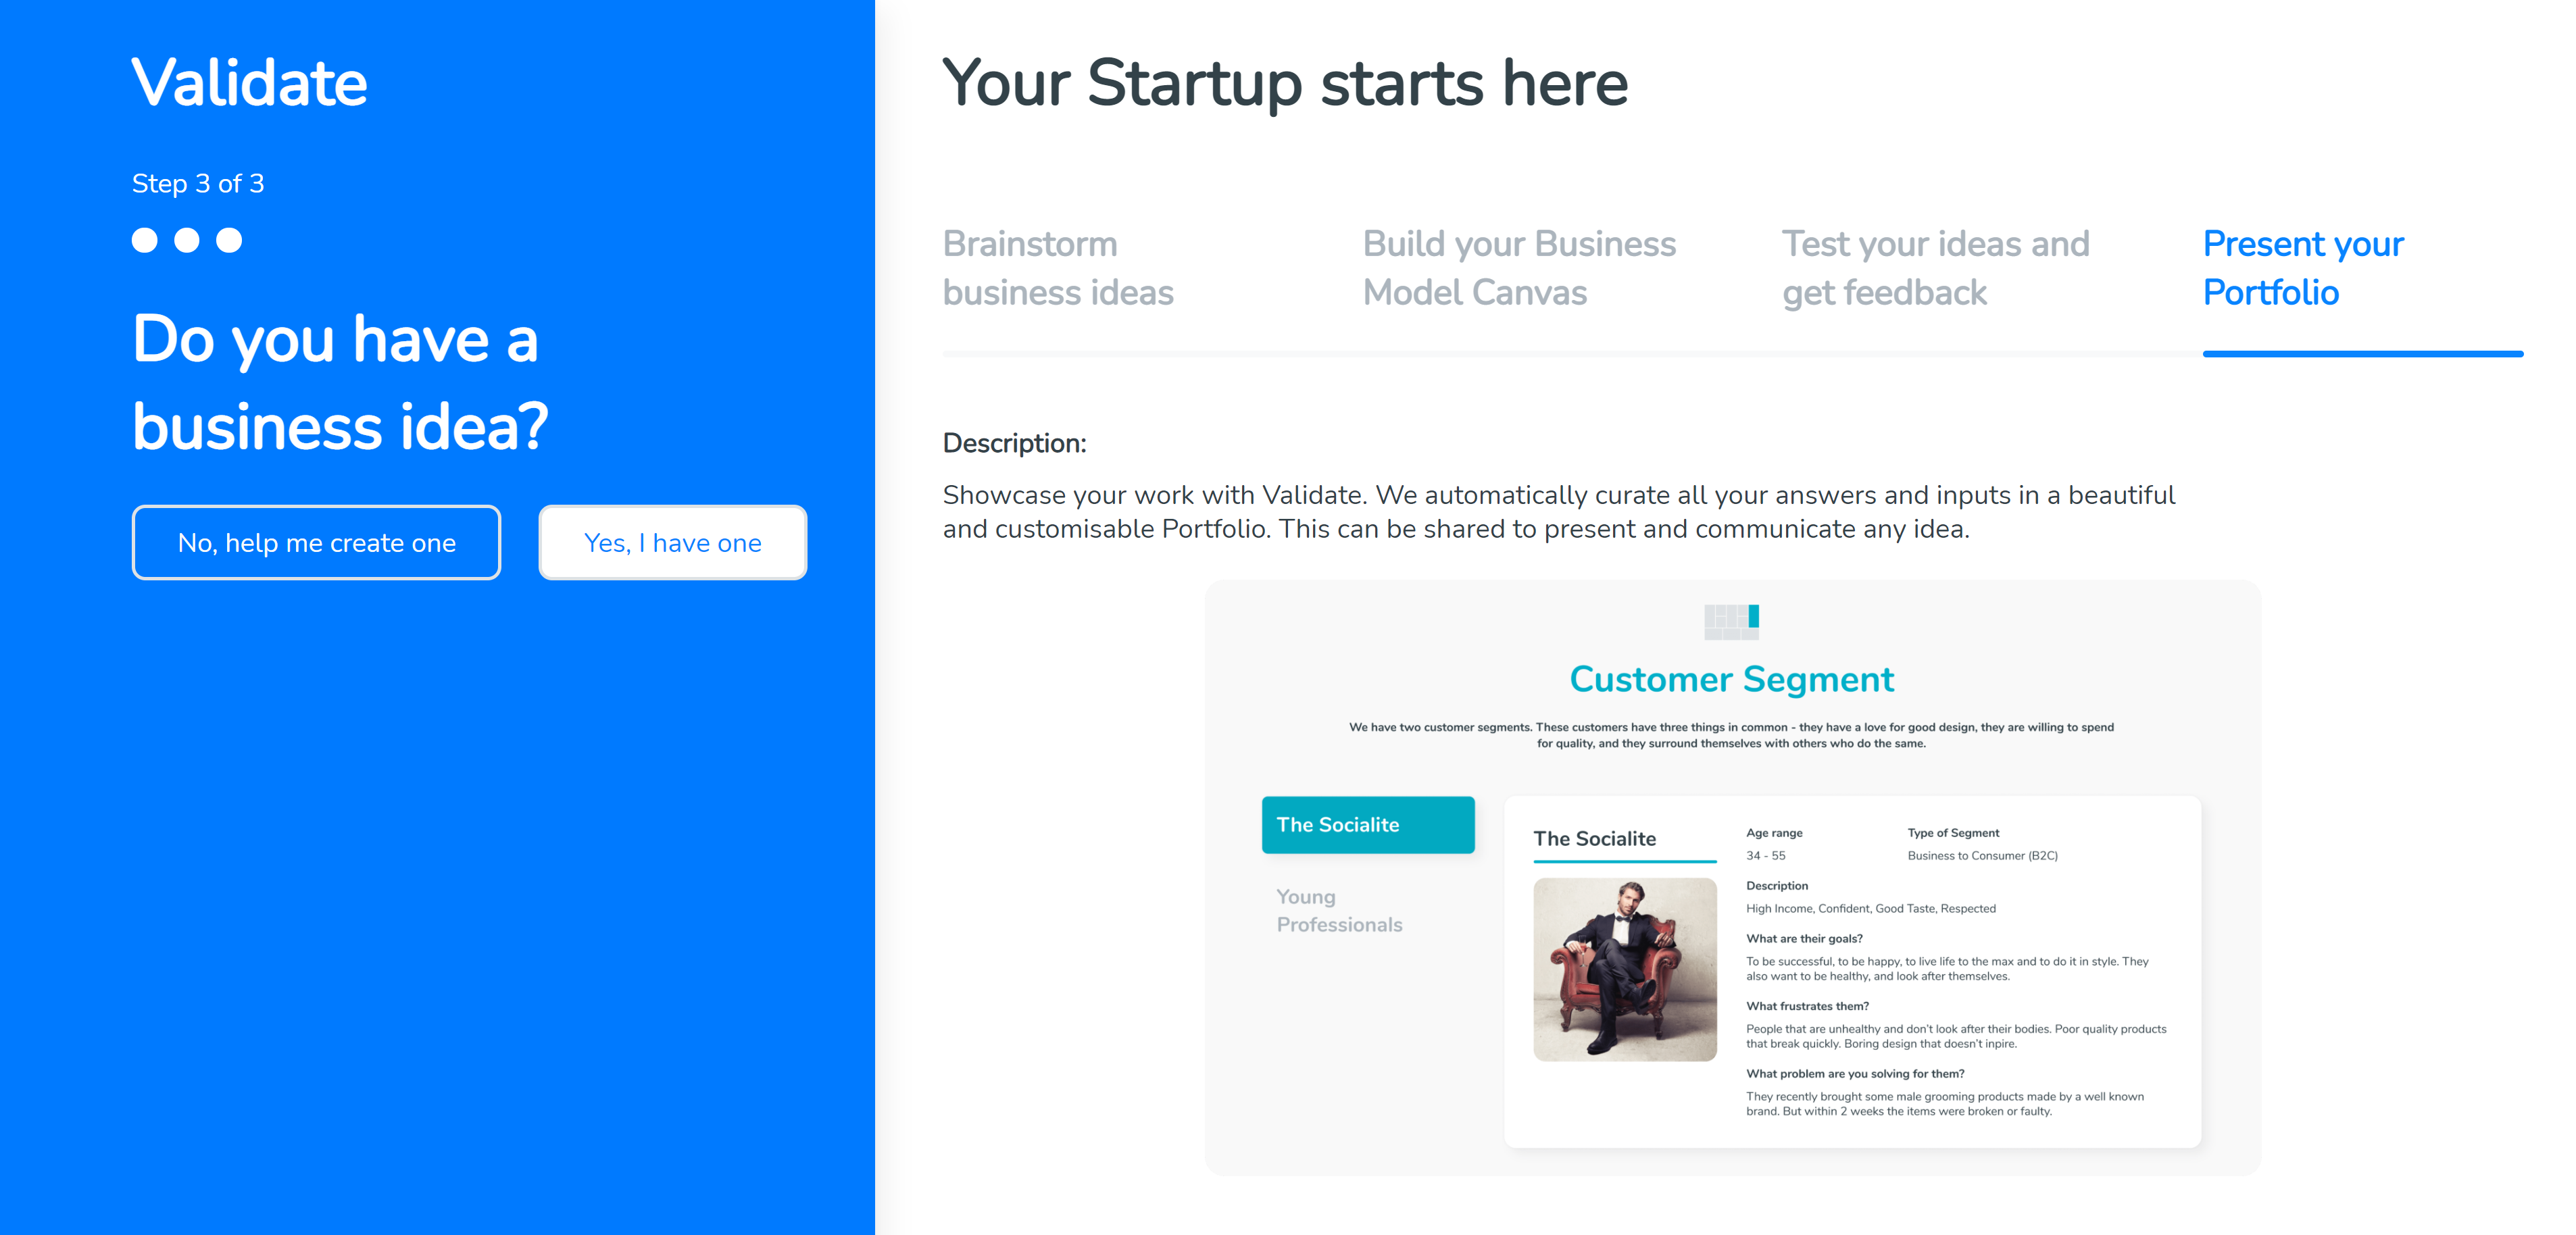 Do you have a business idea? Decide where you start in SimVenture Validate before you log in for the first time.